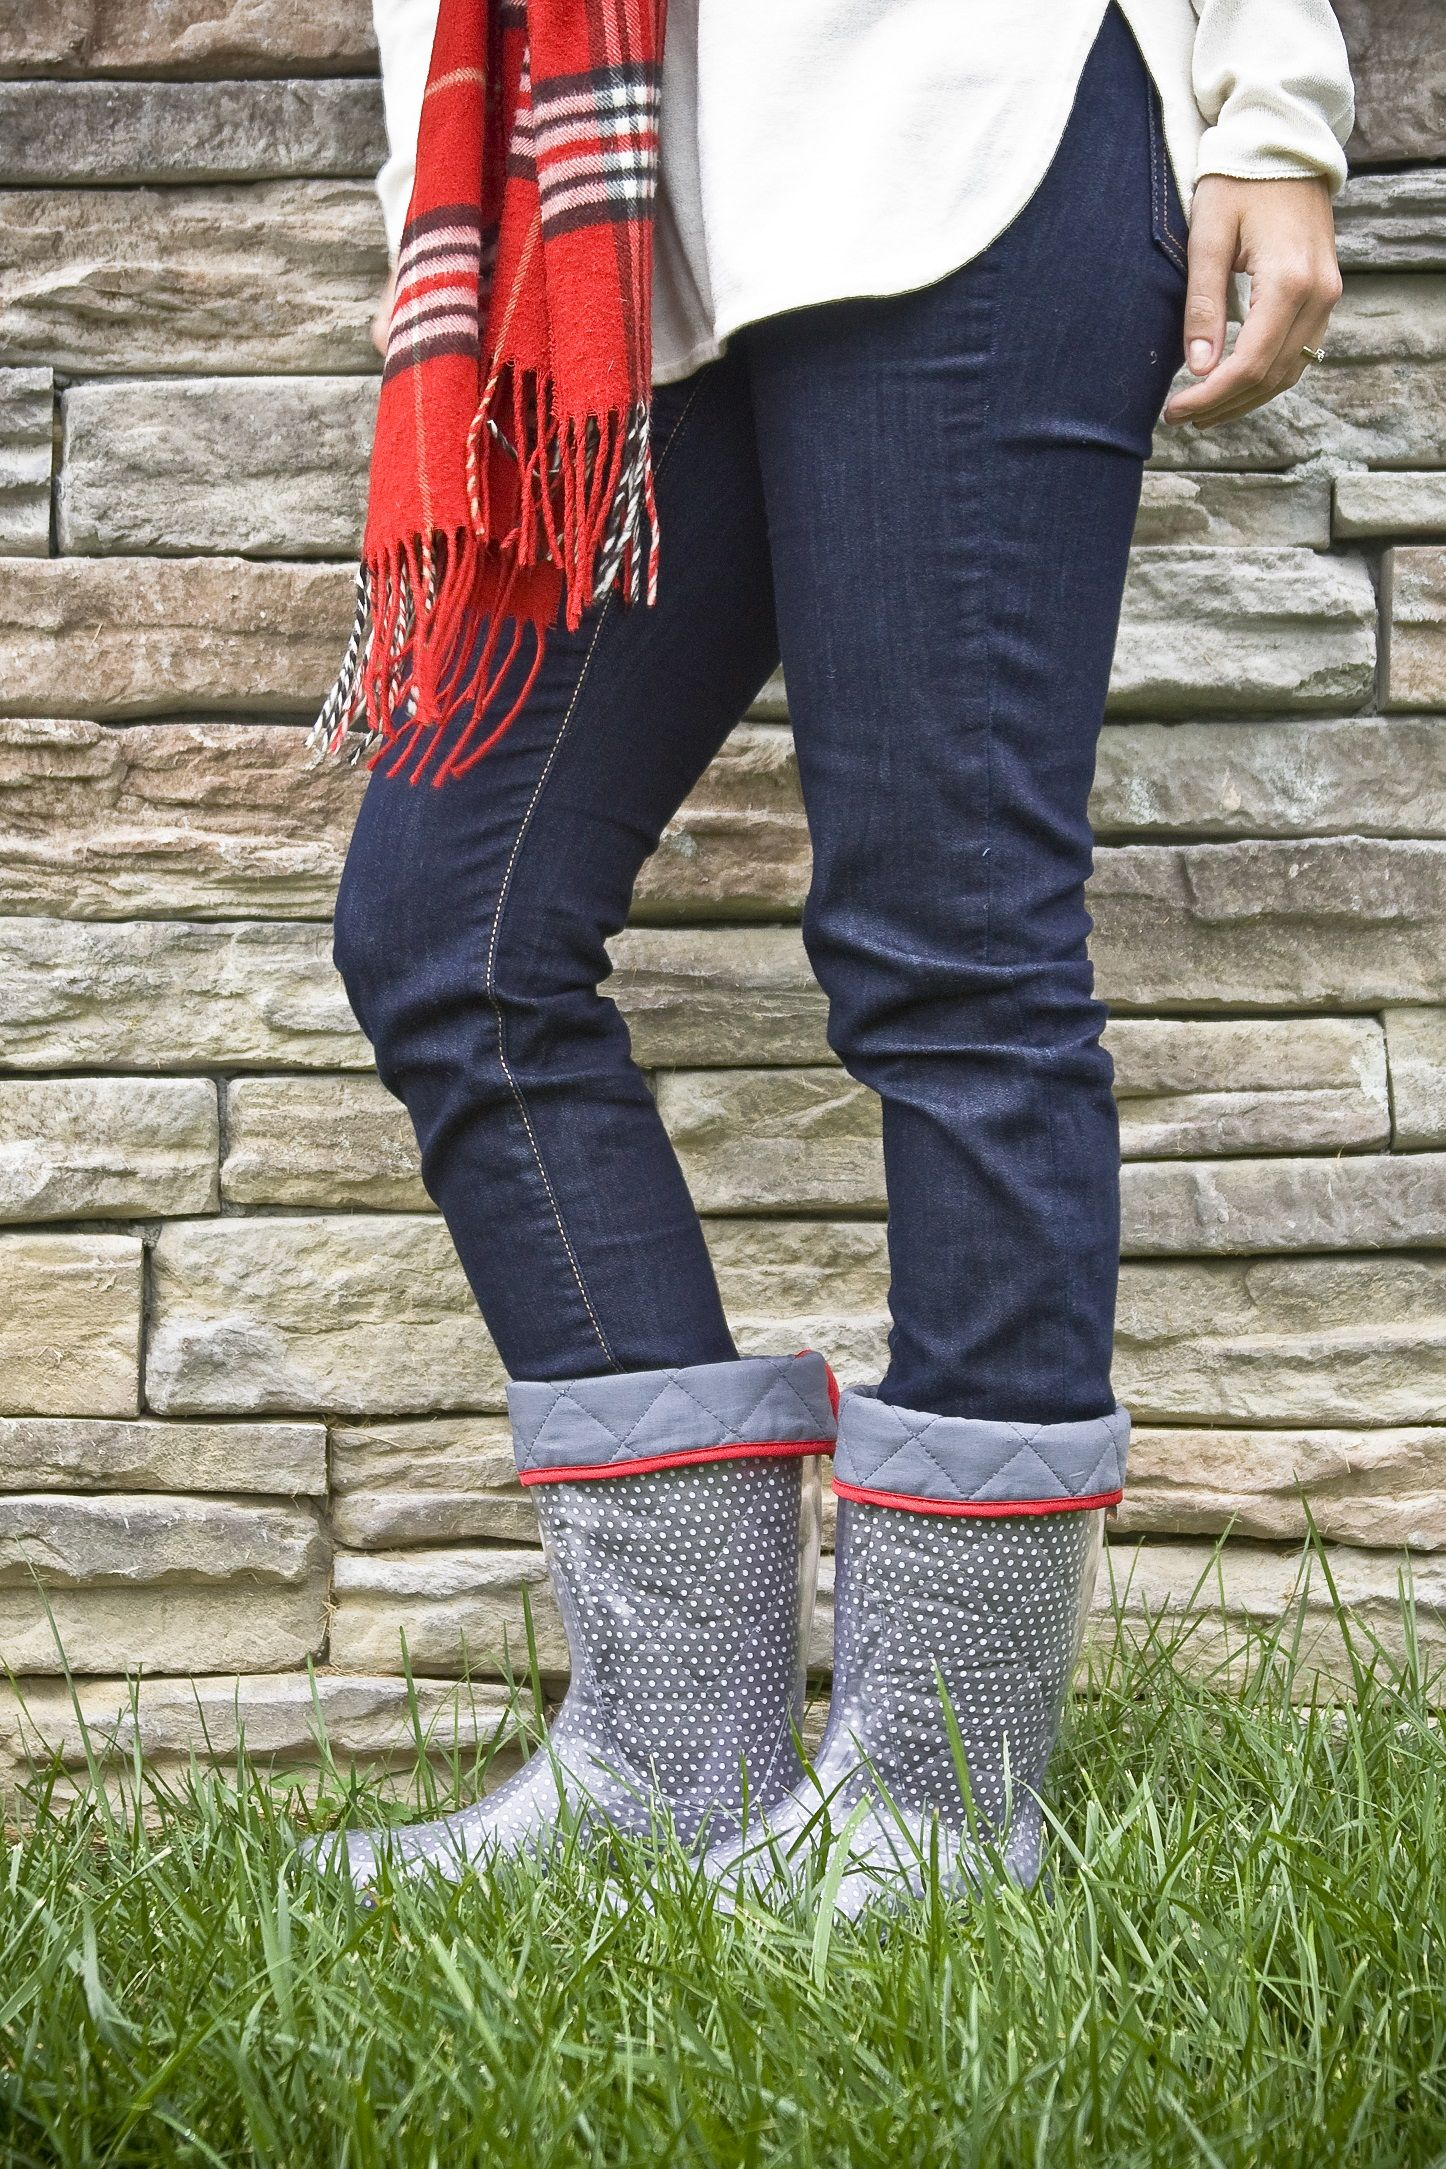 TwoAlity's Grey polka-dot boot liner with Poppy Red binding! :) #ClearBoots #InterchangeableLiners #MadeintheUSA